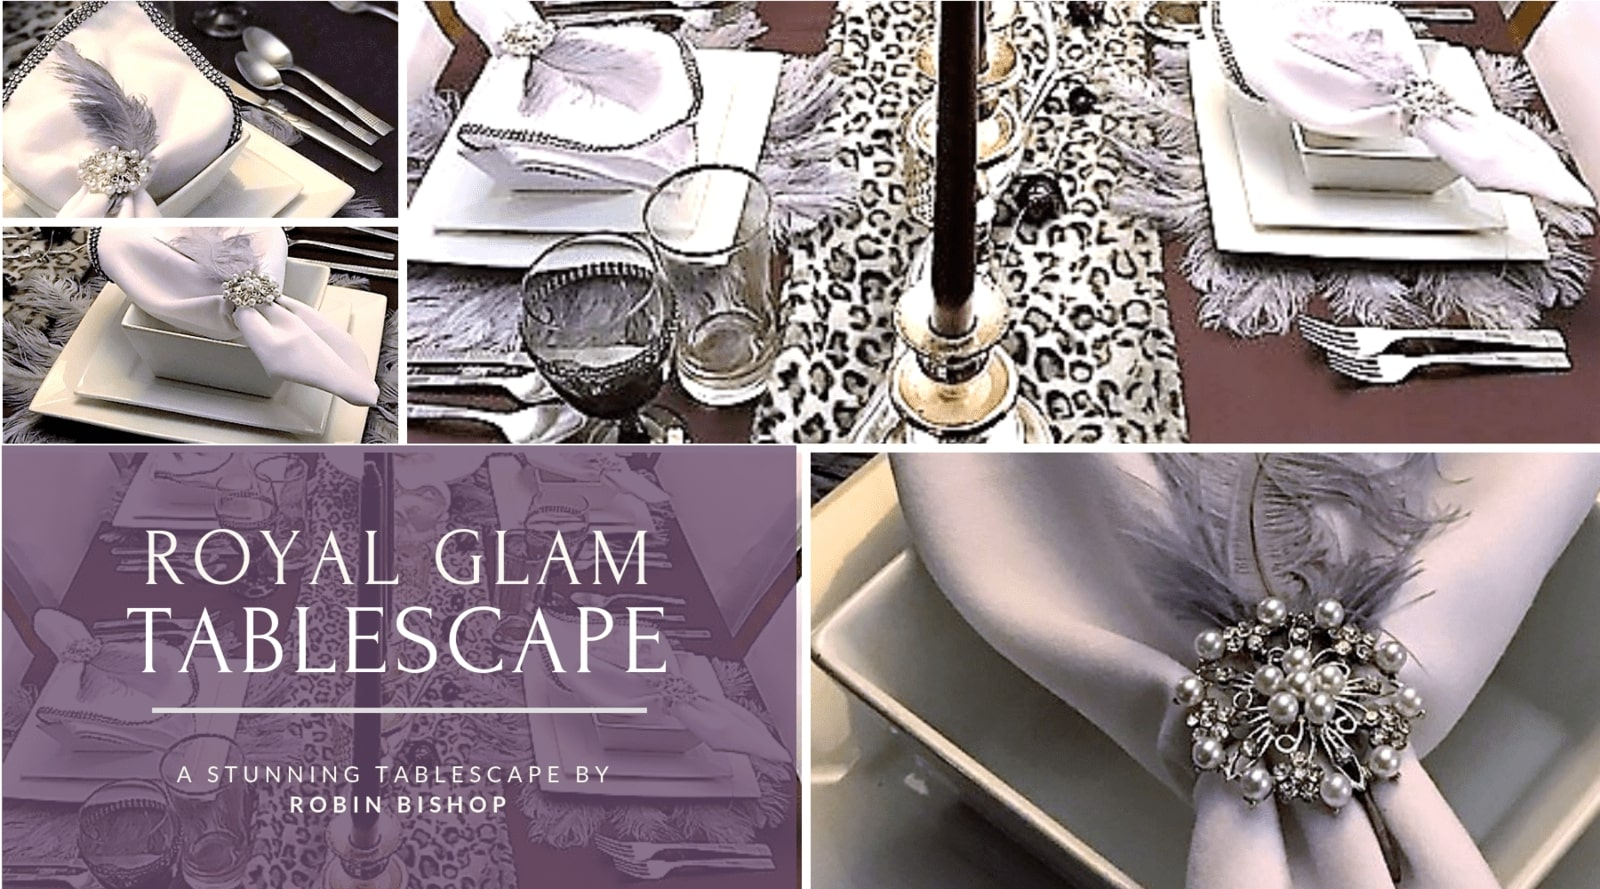 Robin_Bishop_Royal_Glam_Tablescape_(3)